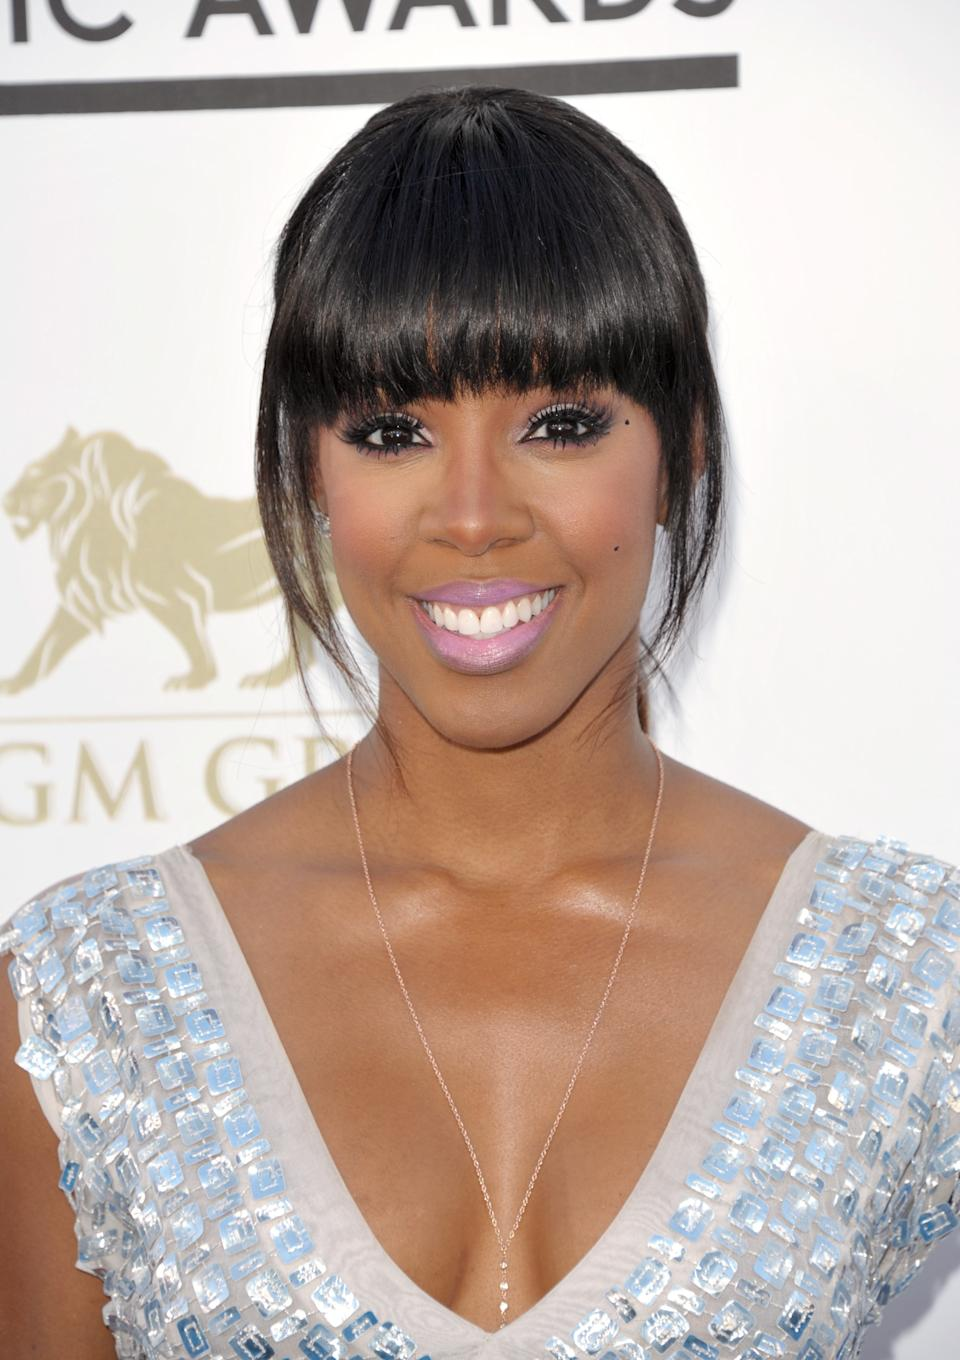 Kelly Rowland arrives at the Billboard Music Awards at the MGM Grand Garden Arena on Sunday, May 19, 2013 in Las Vegas. (Photo by John Shearer/Invision/AP)